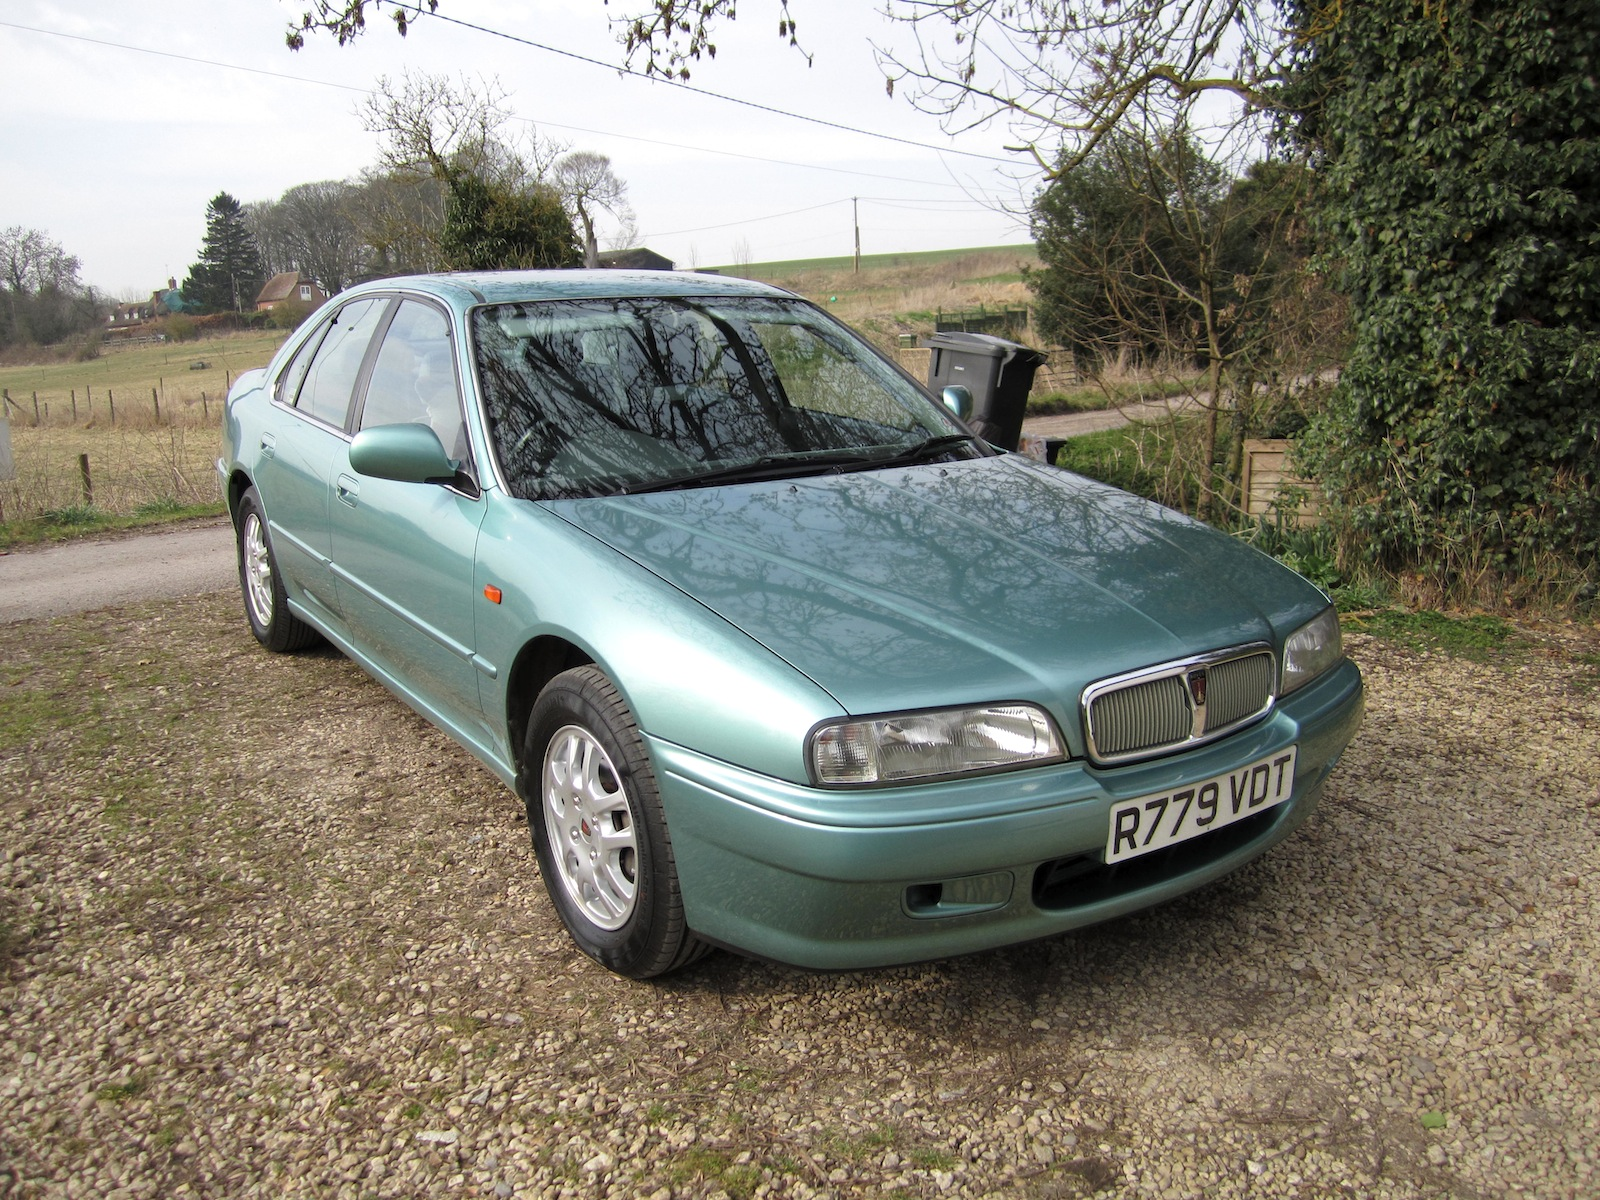 road test 1996 Rover 618